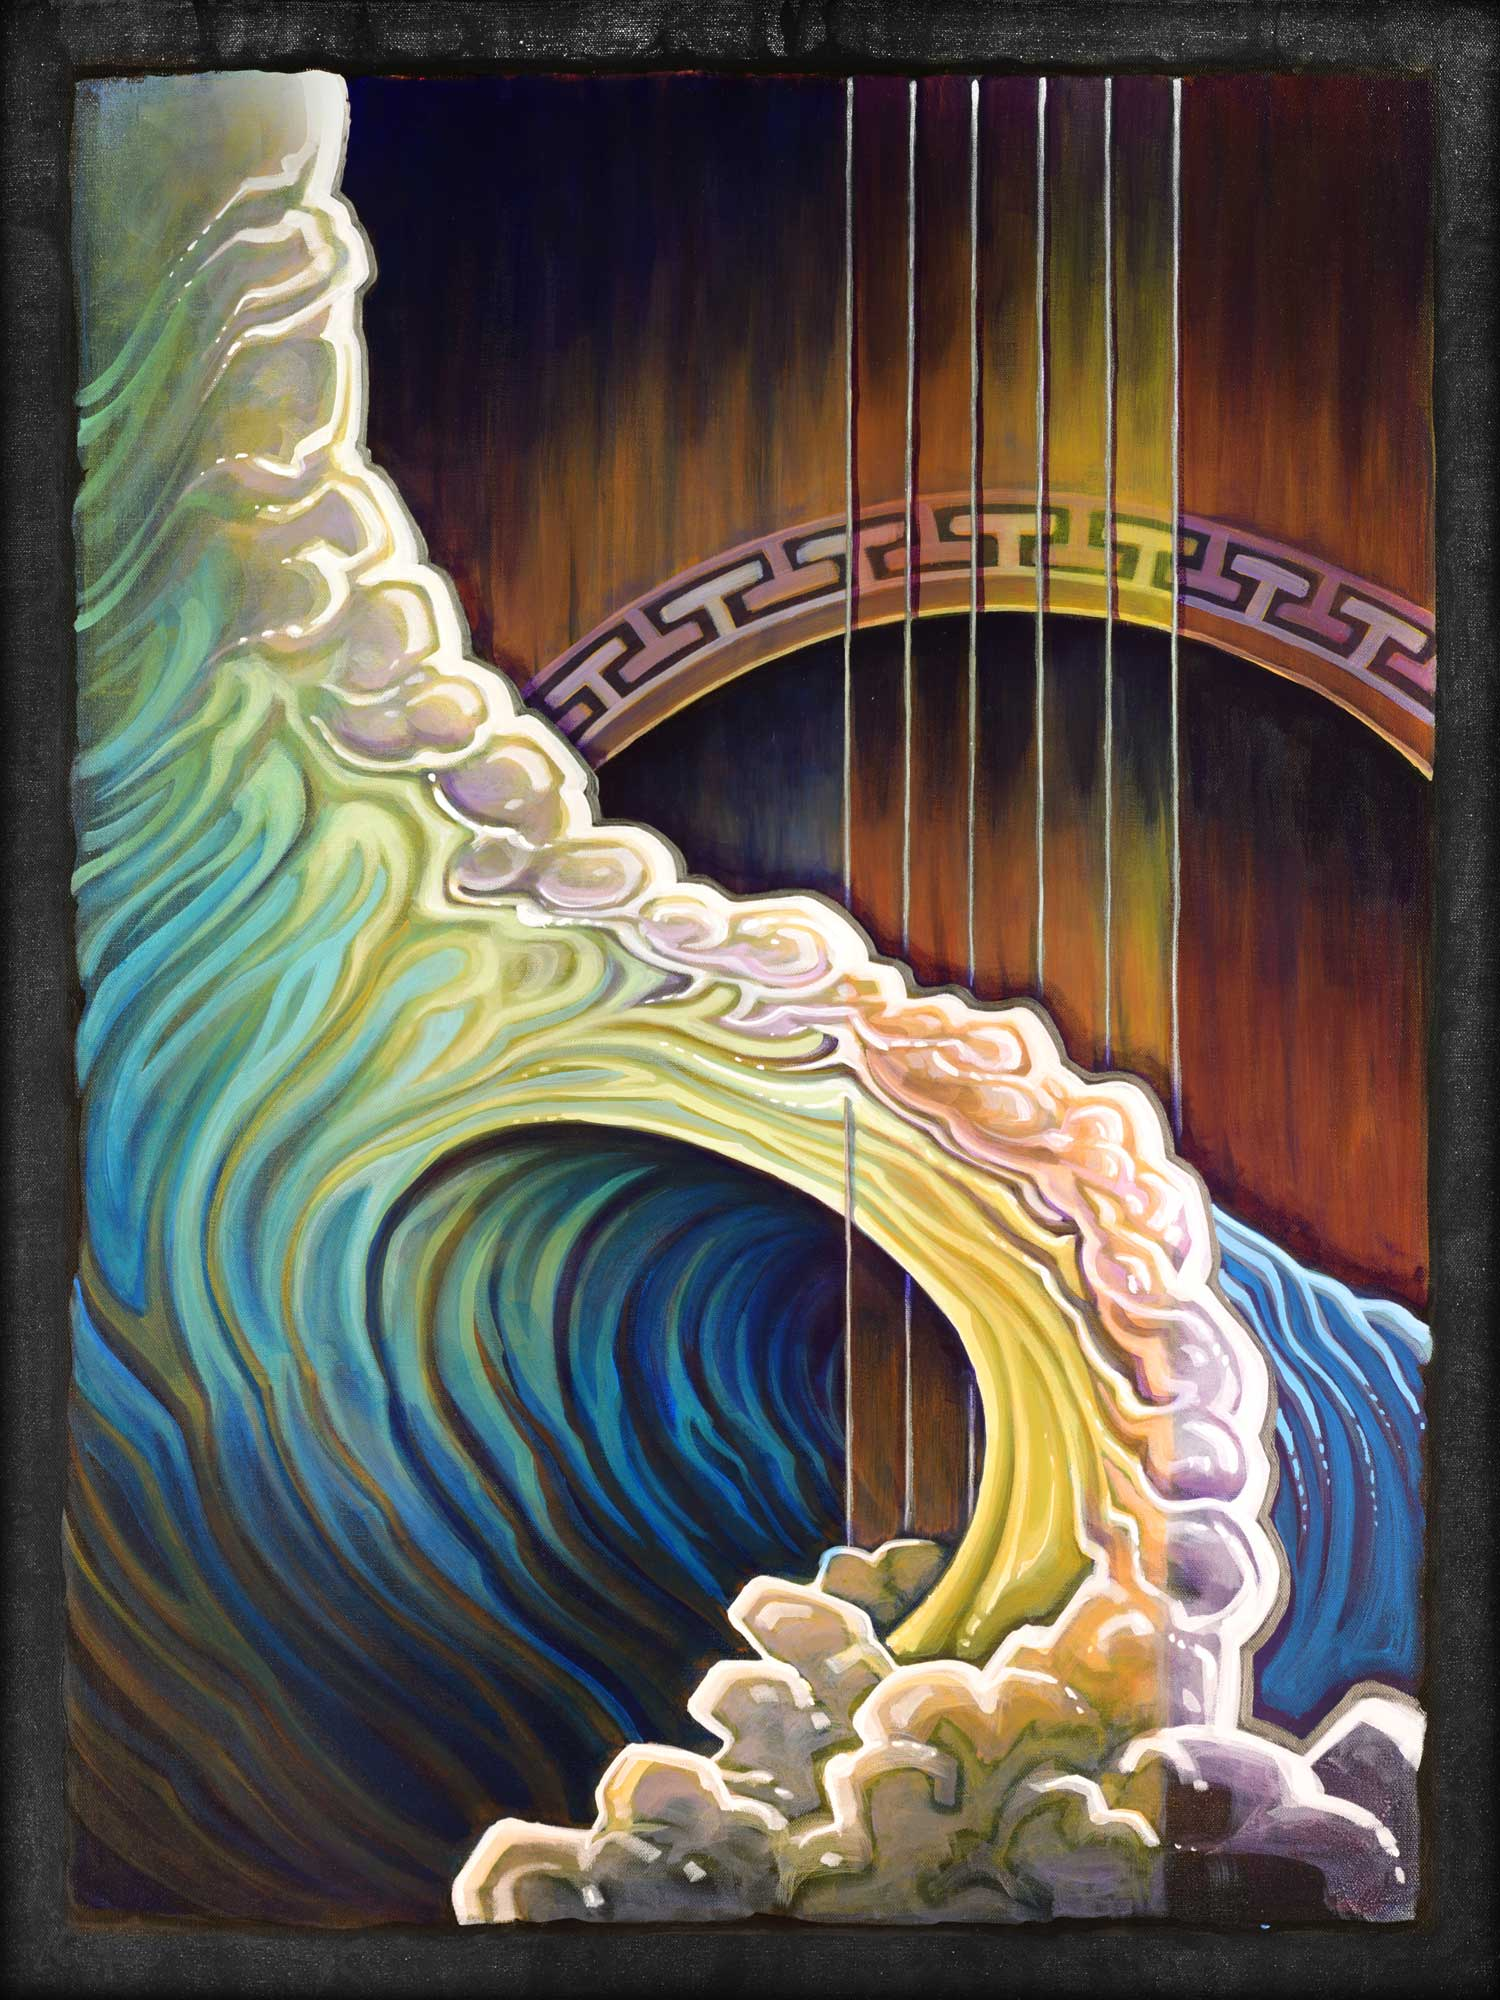 Live art painting of a guitar wave from the Redwood Coast music festival in eureka, California